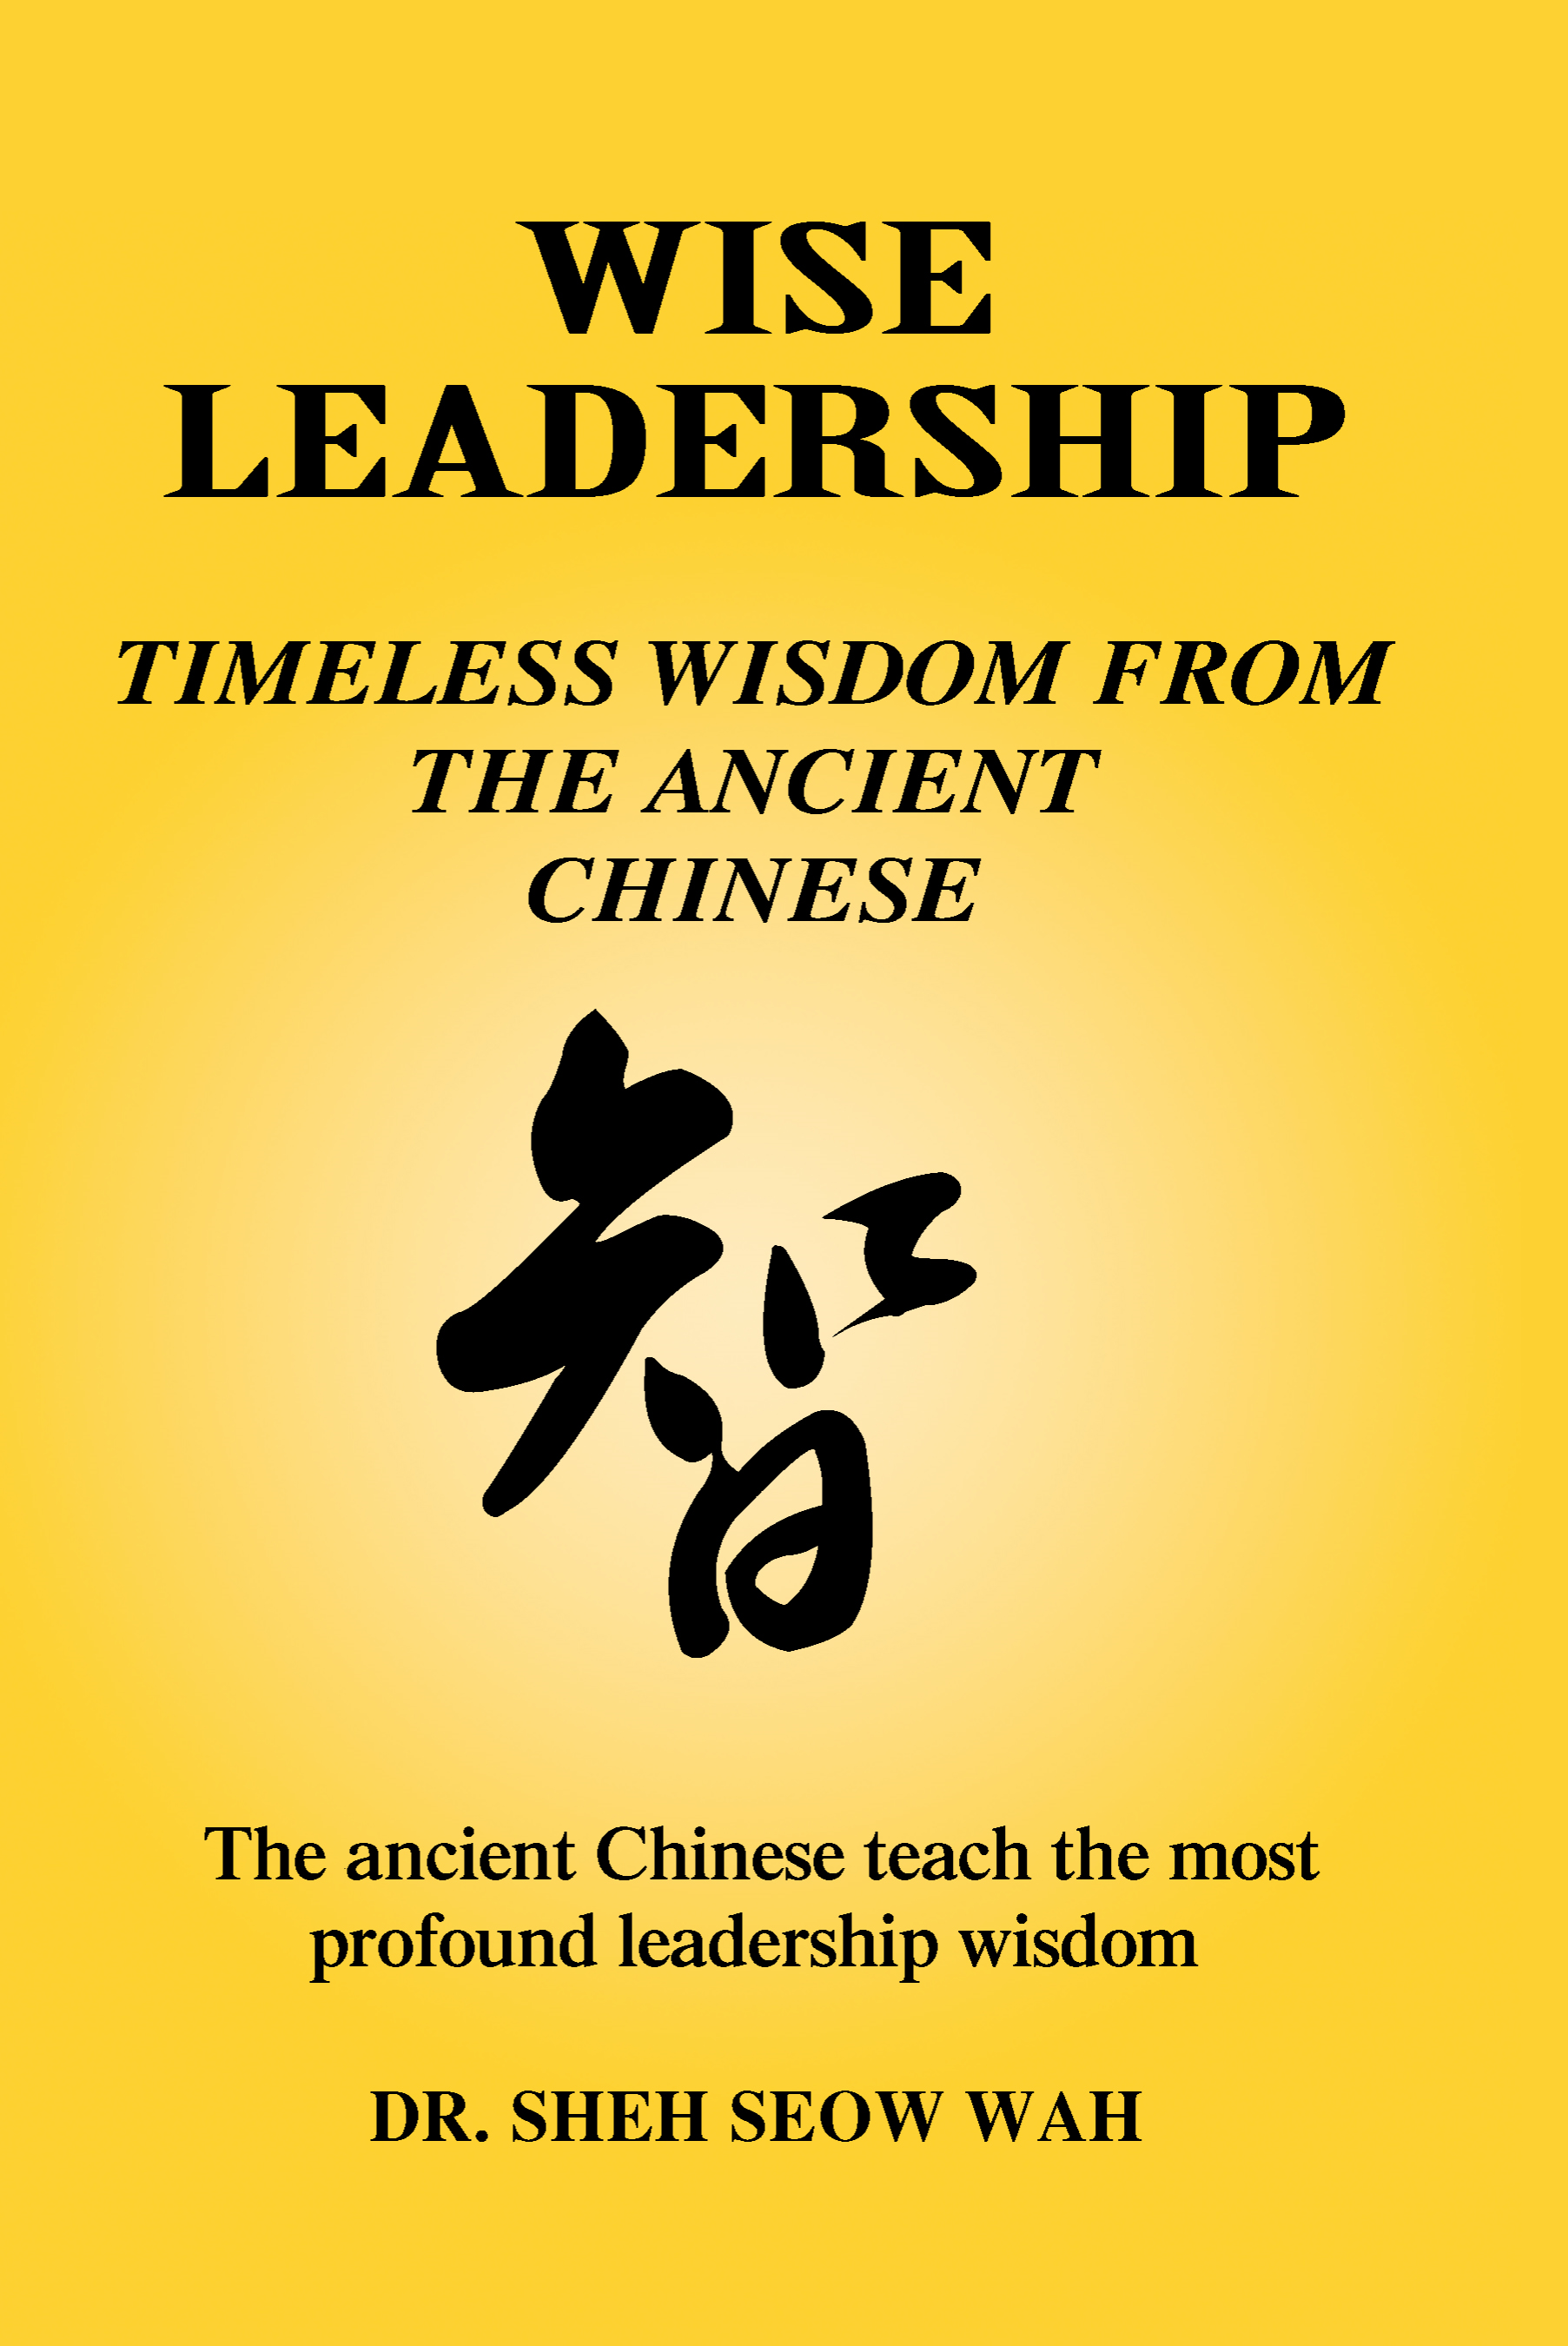 Wise Leadership: Timeless Wisdom from the Ancient Chinese